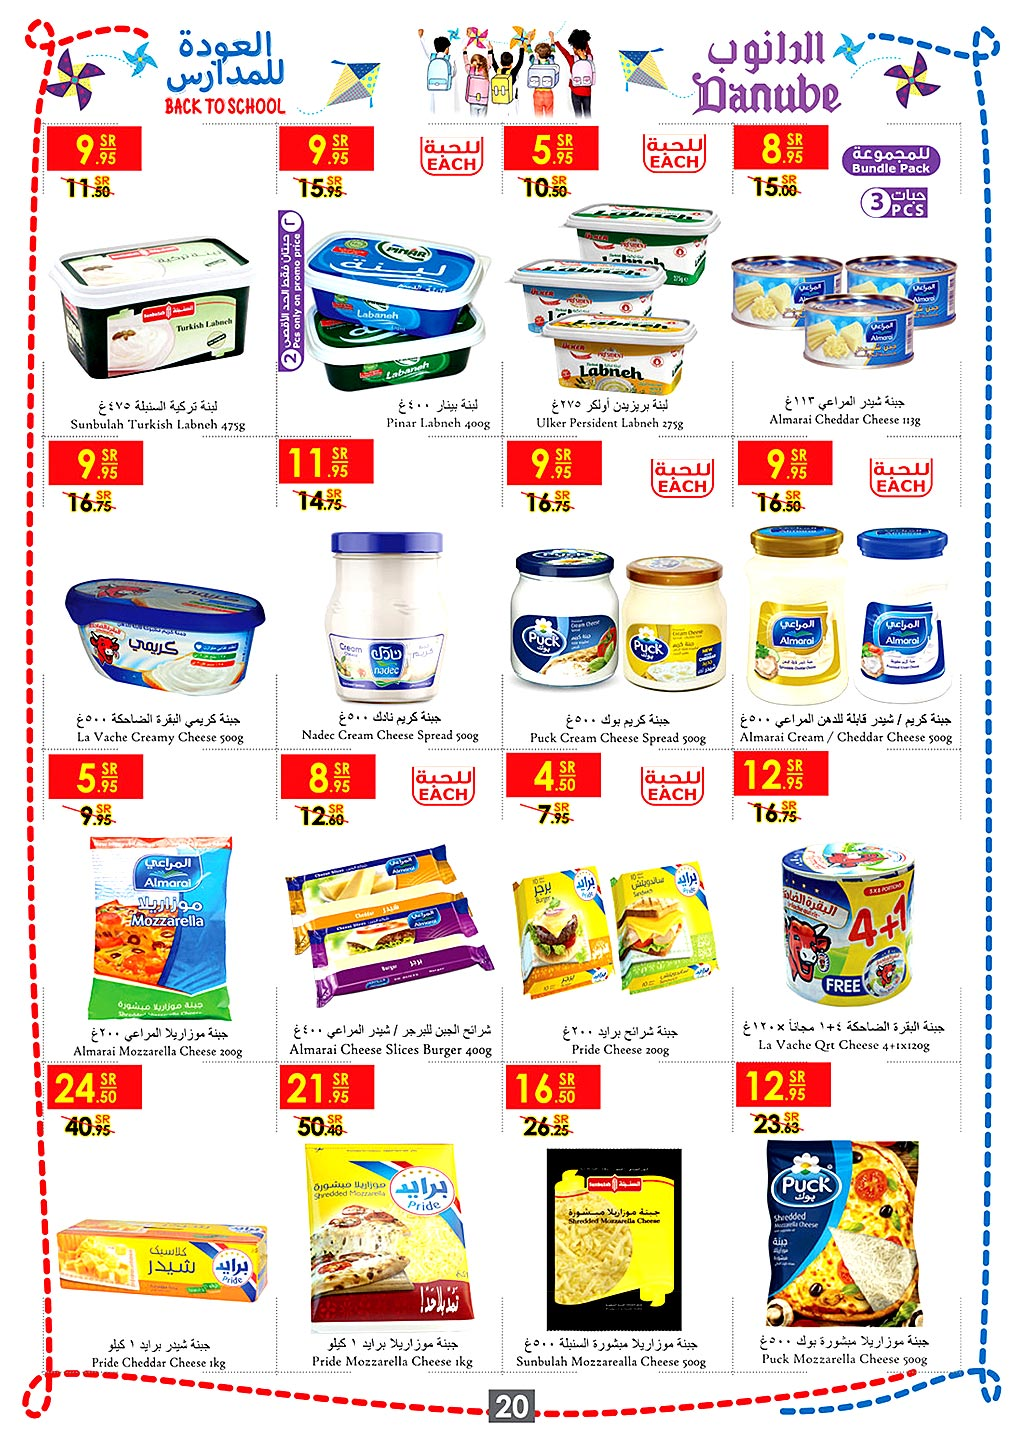 danube offers from 21aug to 28aug 2019 page number 20 عروض الدانوب من 21 أغسطس حتى 28 أغسطس 2019 صفحة رقم 20